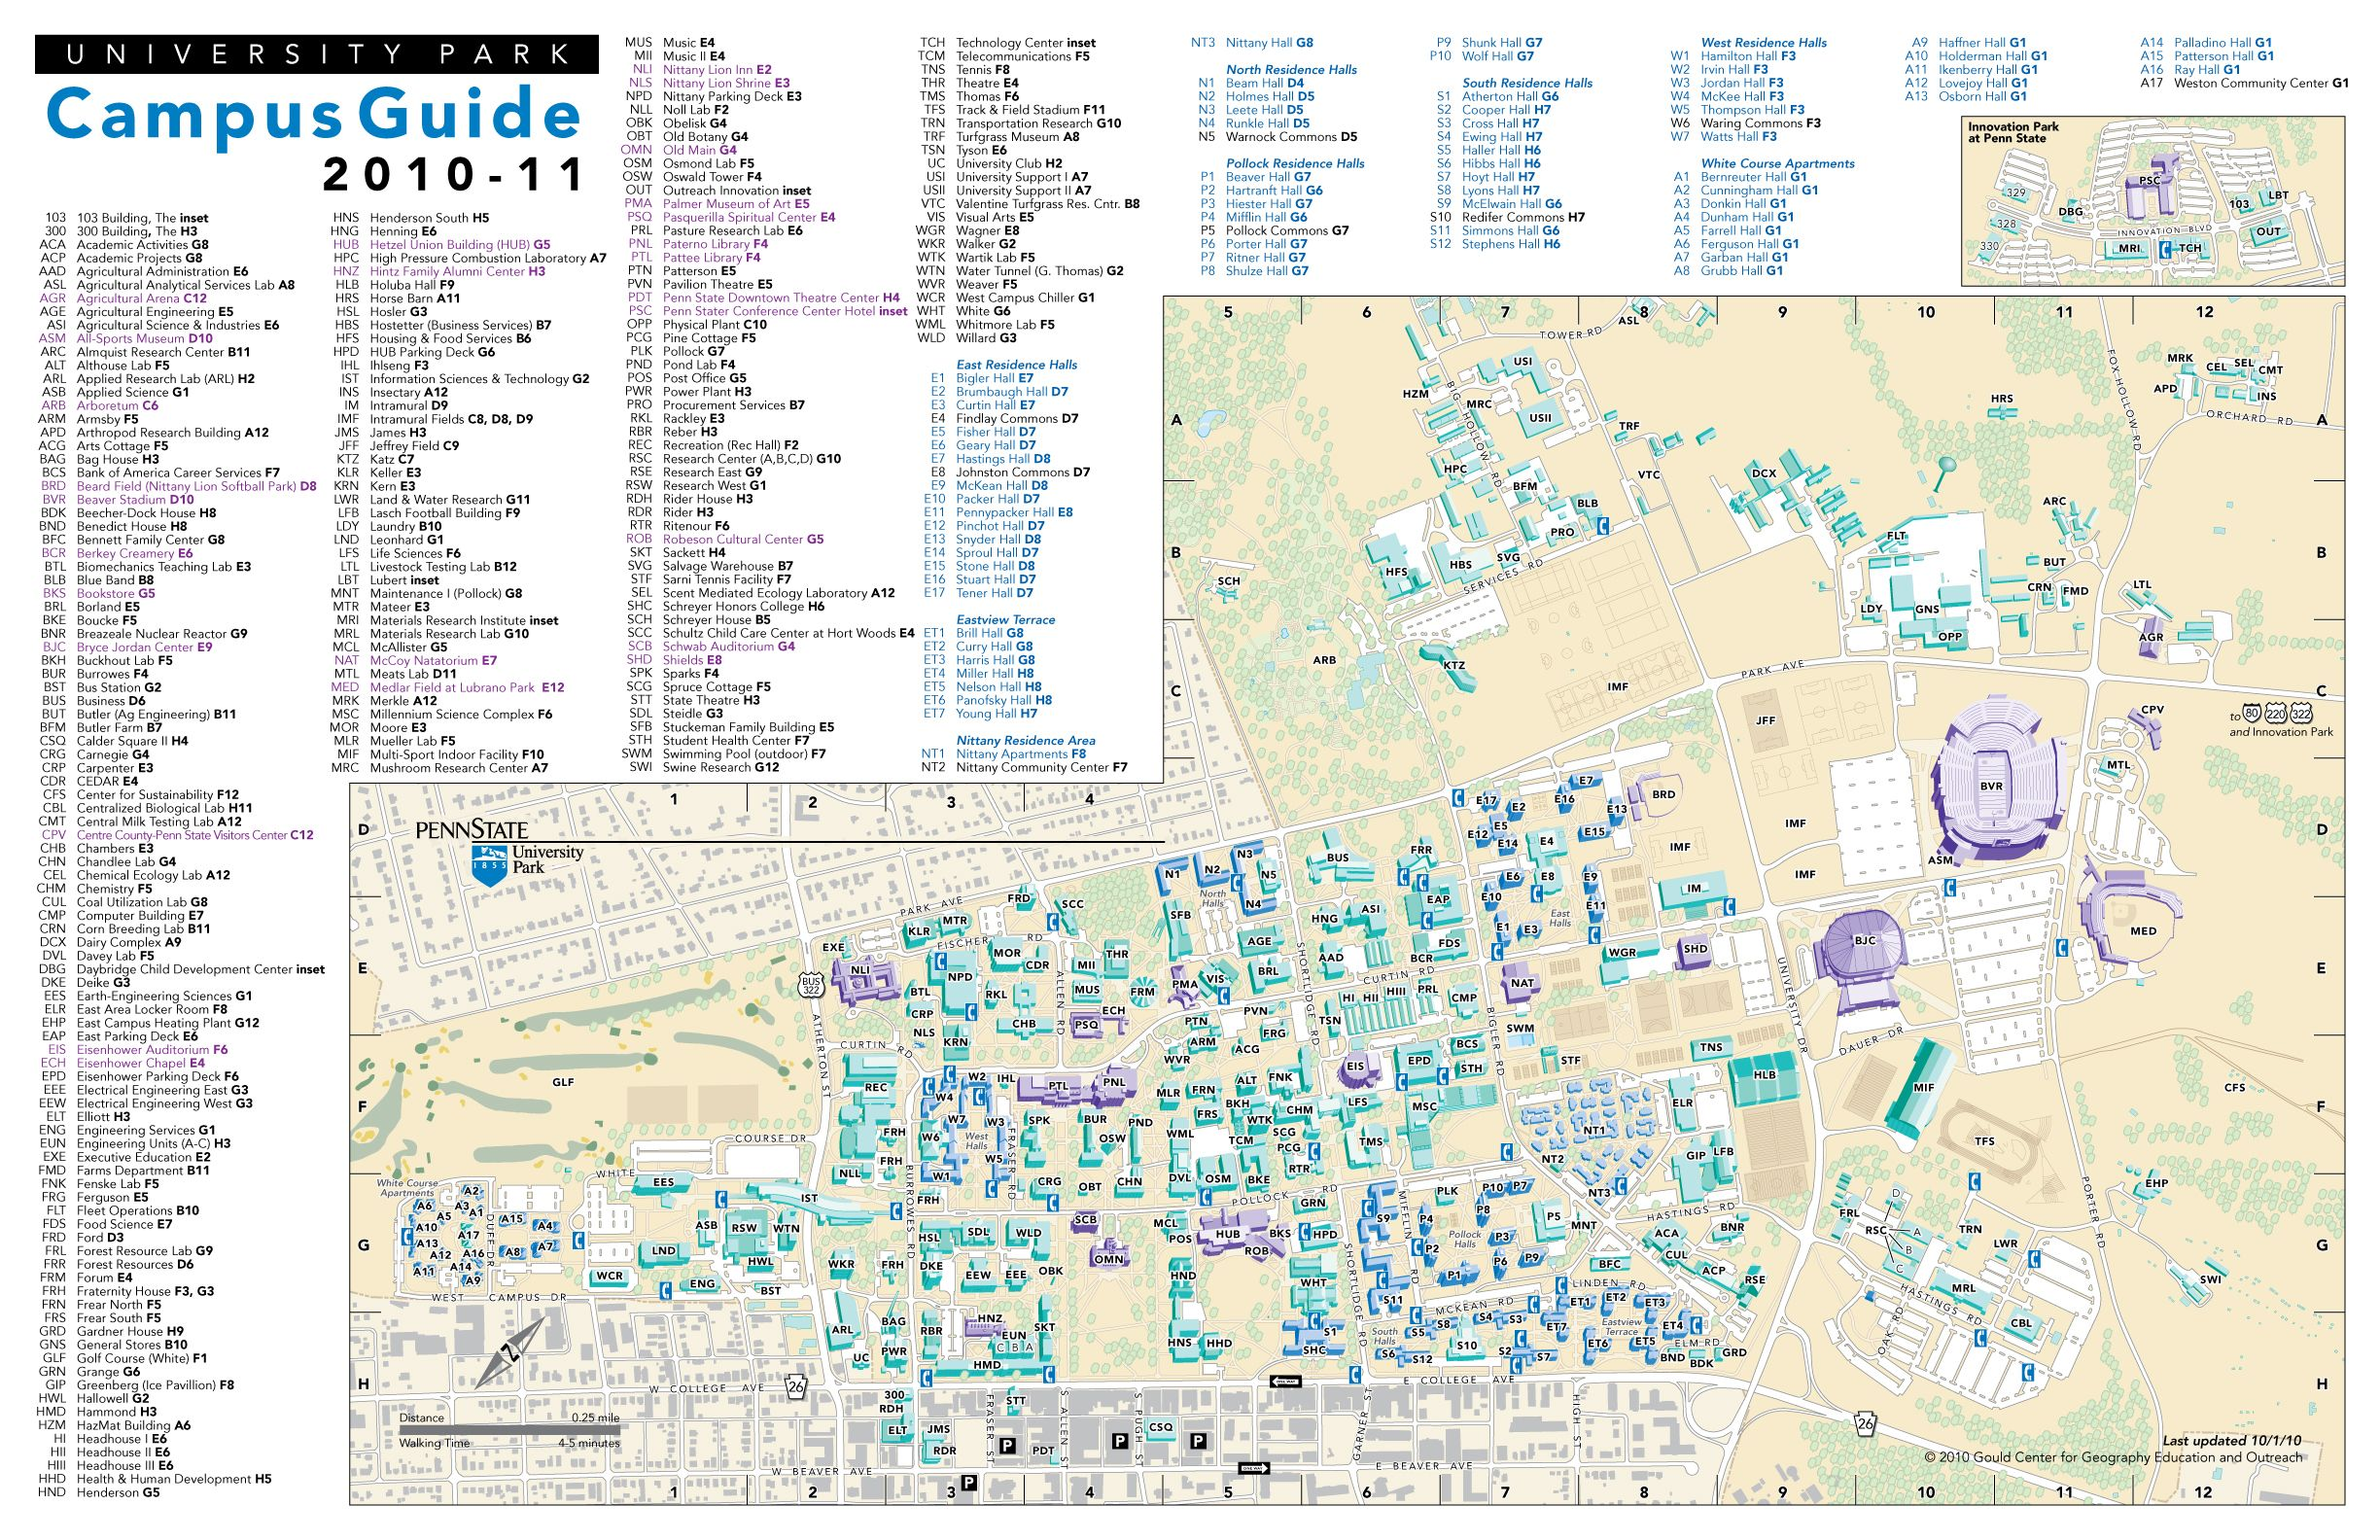 PSU- University Park, Campus Map | Campus map, State college ...